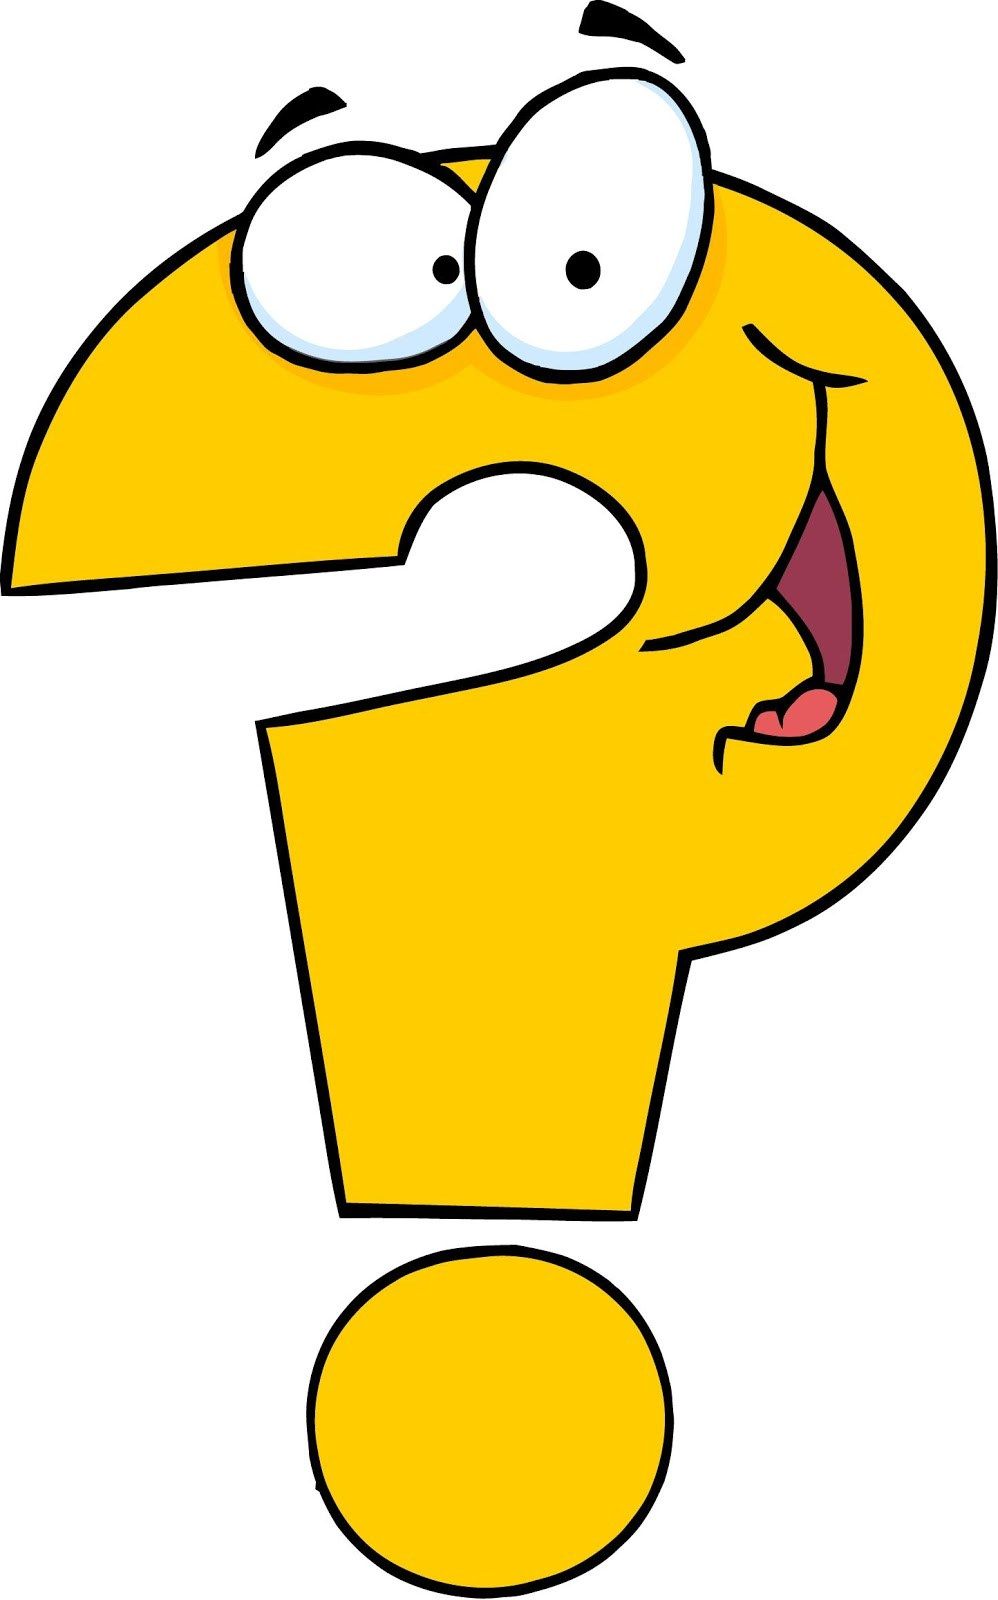 Animated question mark clipart 2 » Clipart Portal.